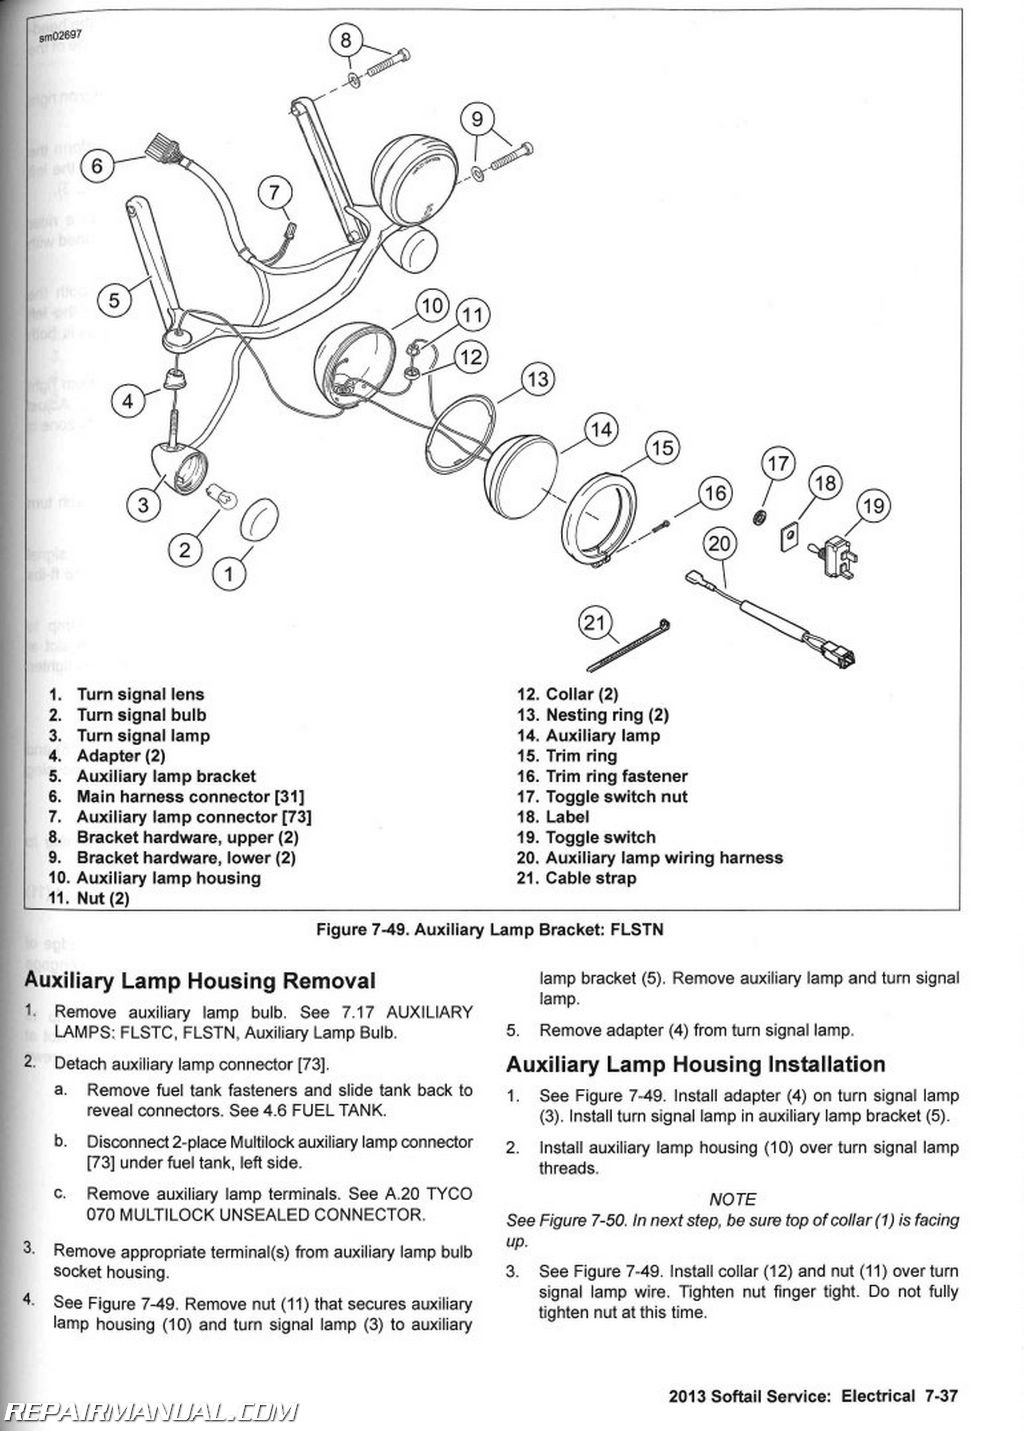 4C3D7 Wiring Diagram 2008 Harley Davidson Rocker | Digital ResourcesDigital Resources